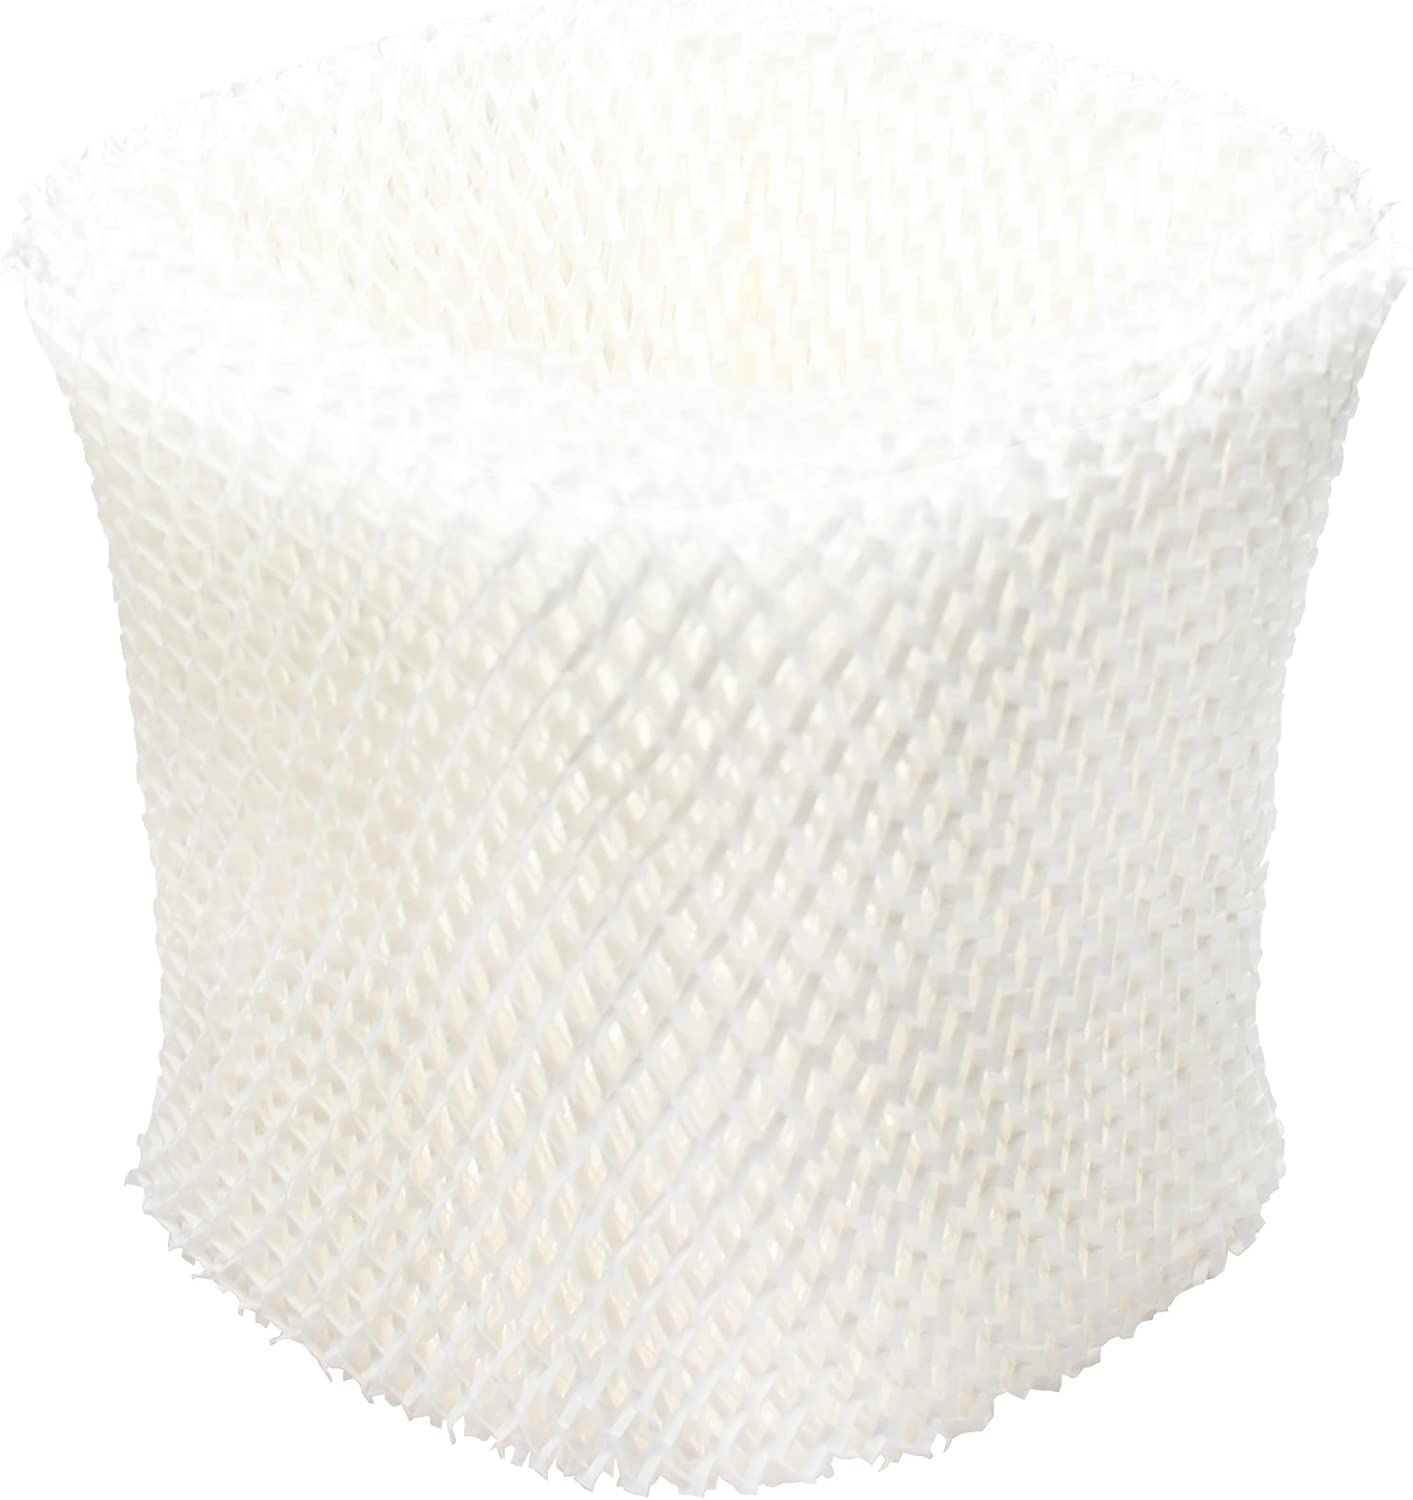 Upstart Battery Replacement for White Westinghouse WWHM-2090ZE Humidifier Filter - Compatible with White Westinghouse WWH650 Air Filter